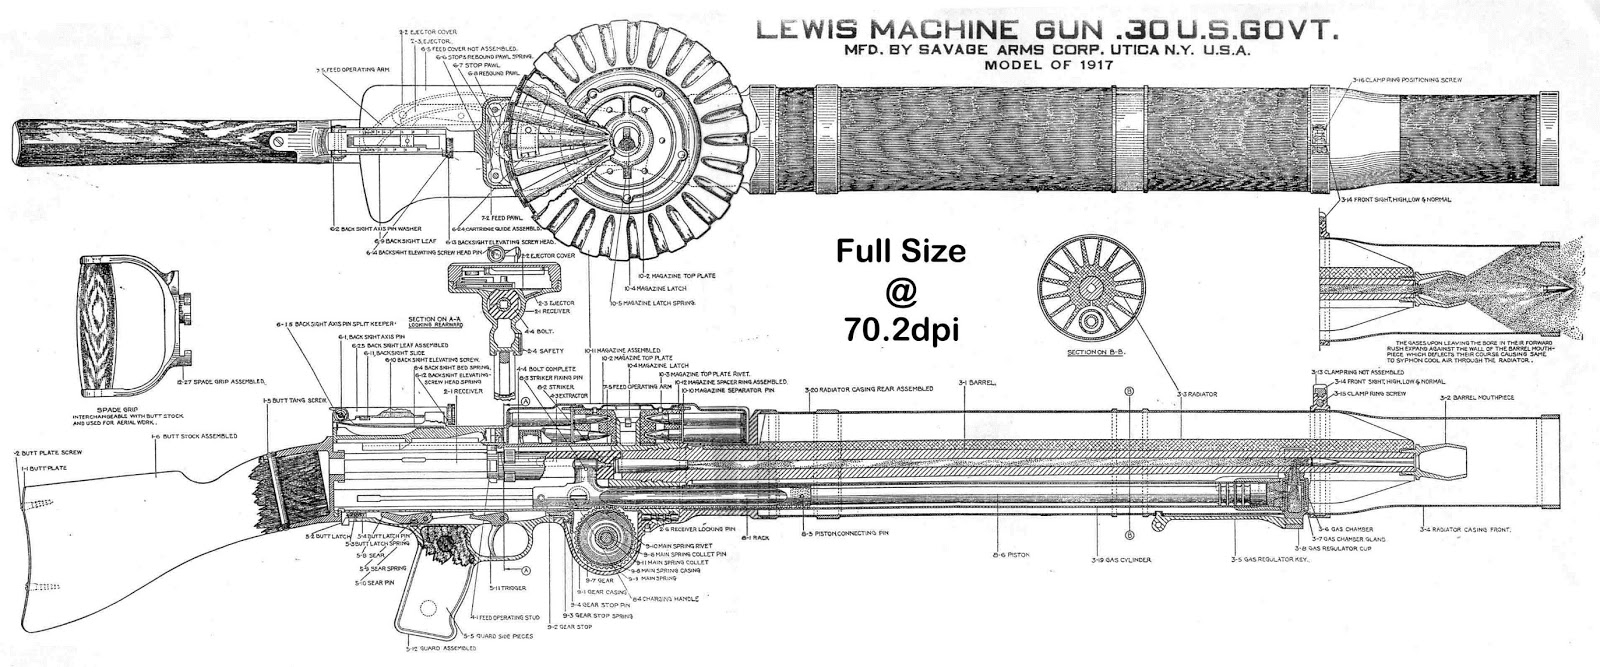 welcome to the world of weapons: Lewis Gun